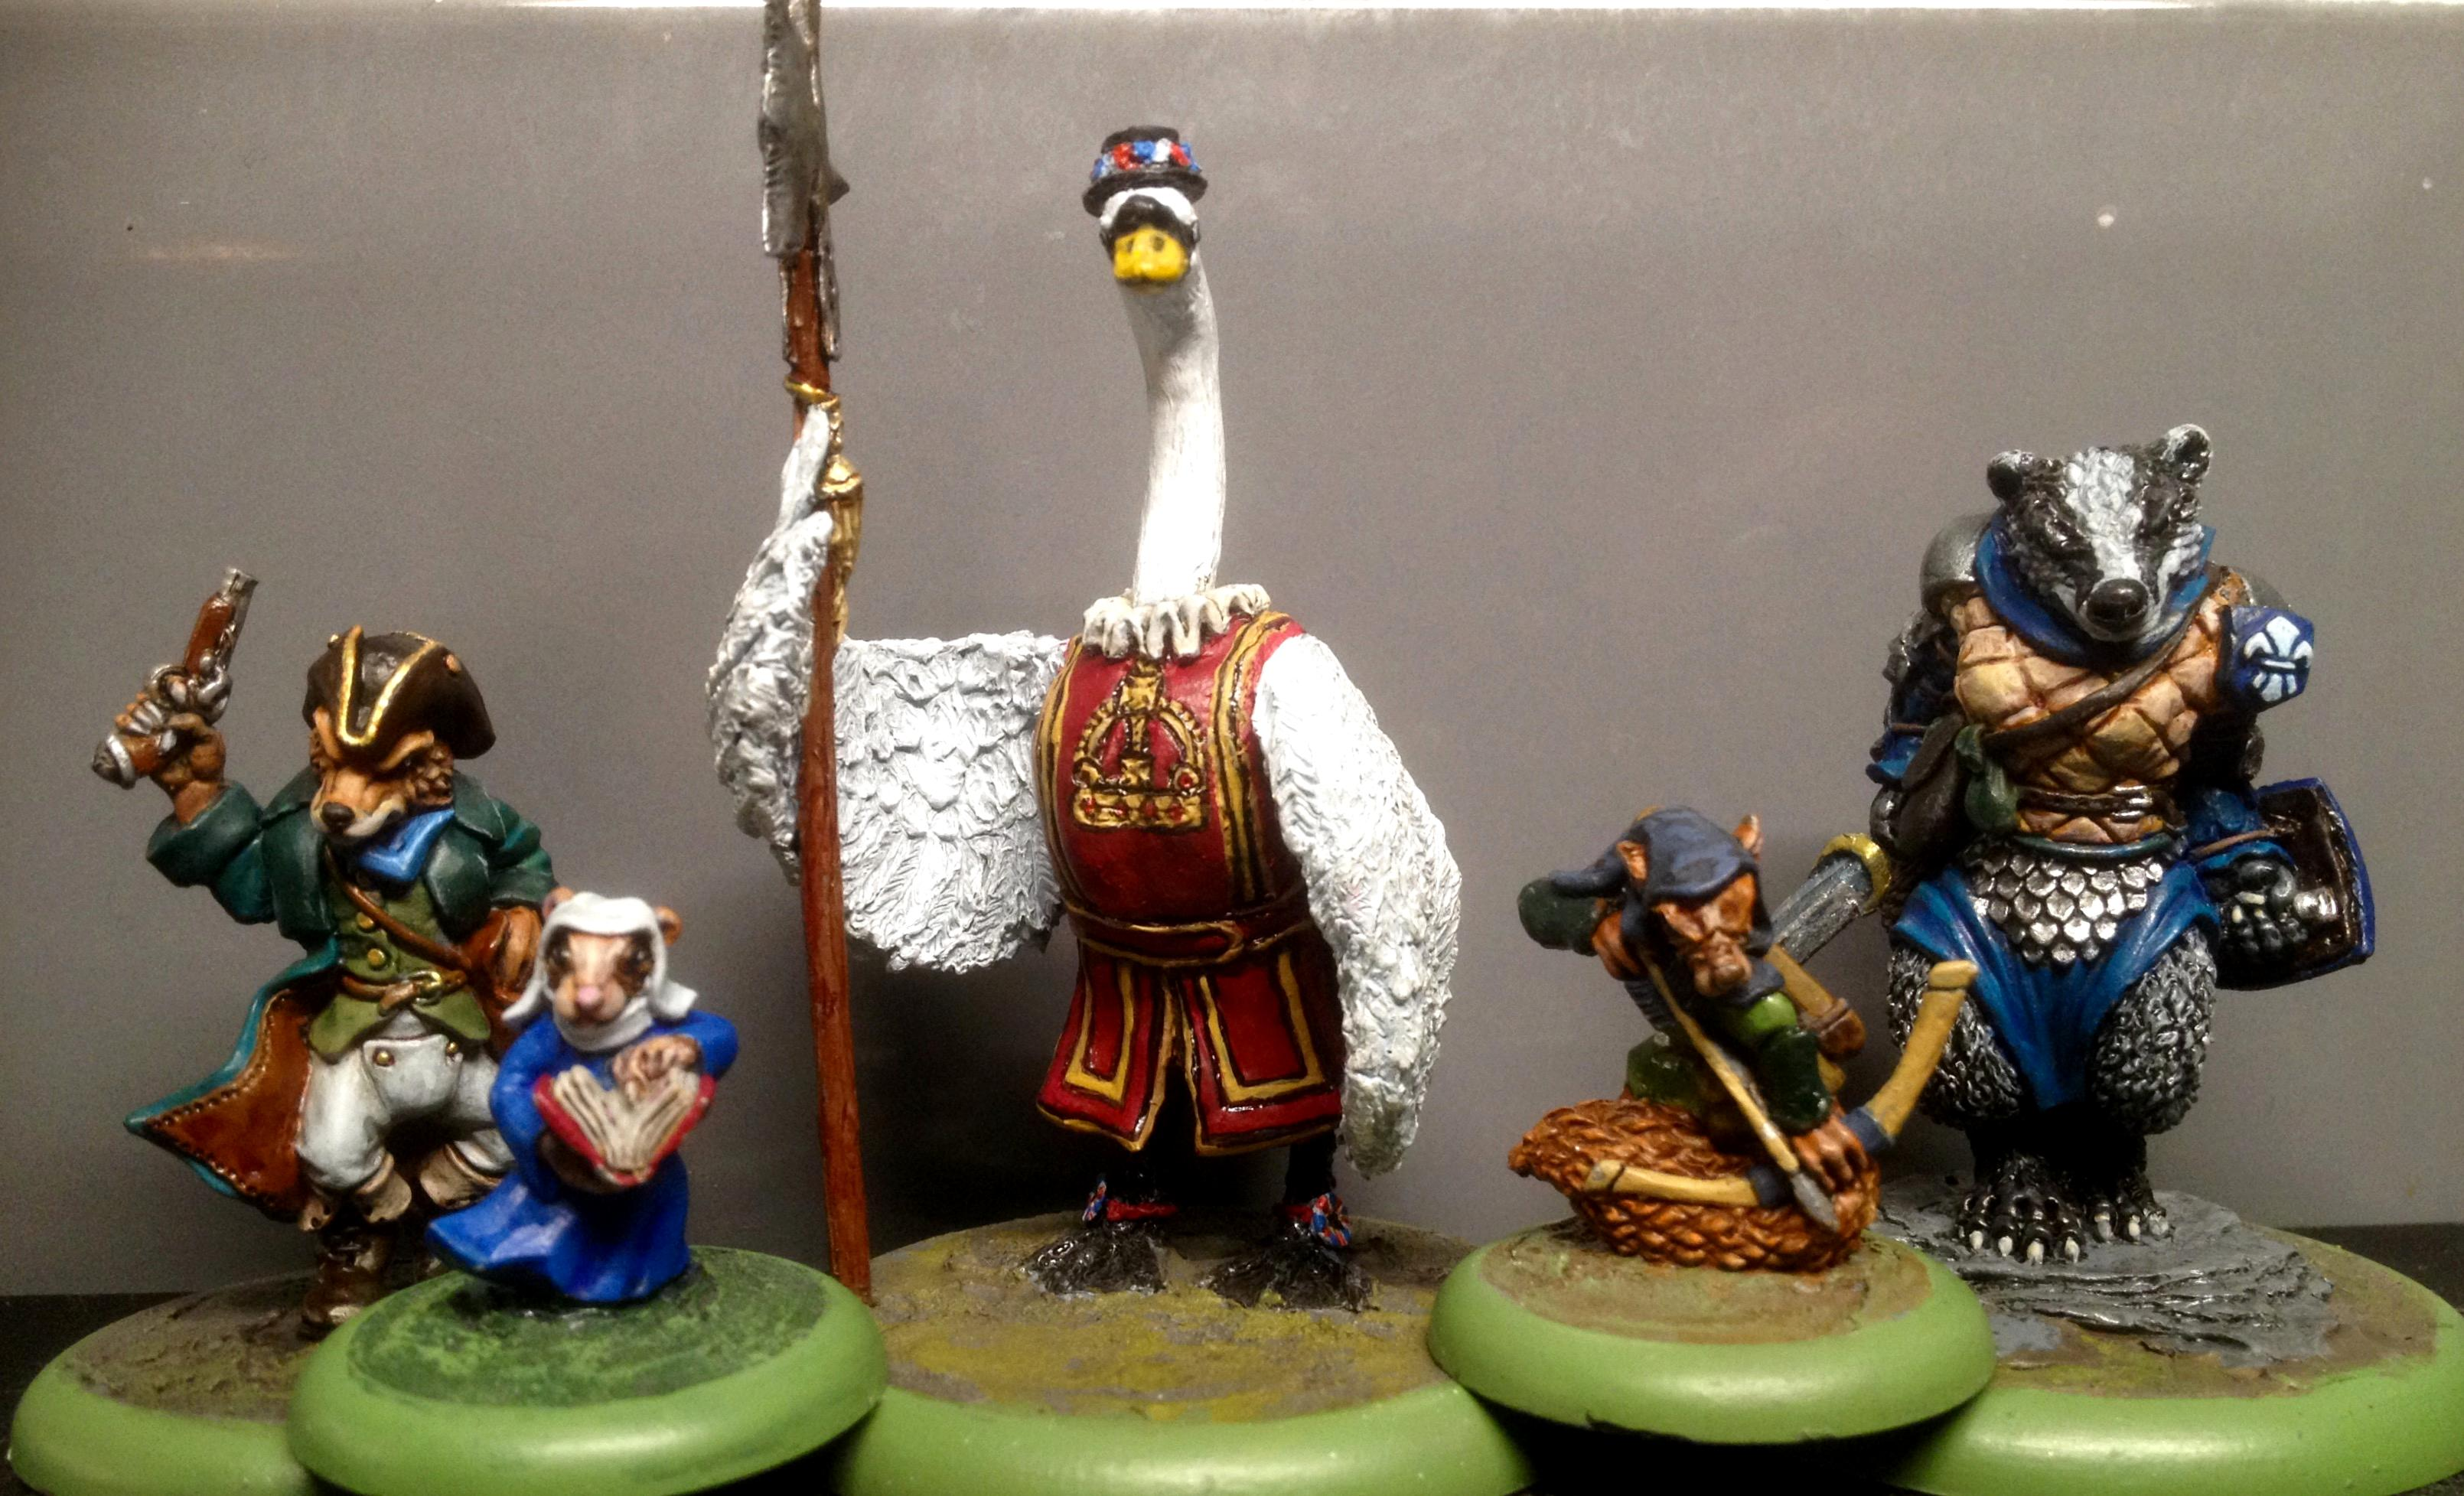 Anthropomorphic Animals., Beefeater, Burrows And Badgers, Furry, Greenstuff, Oathsworn, Sculpting, Swan, Yeoman Guards